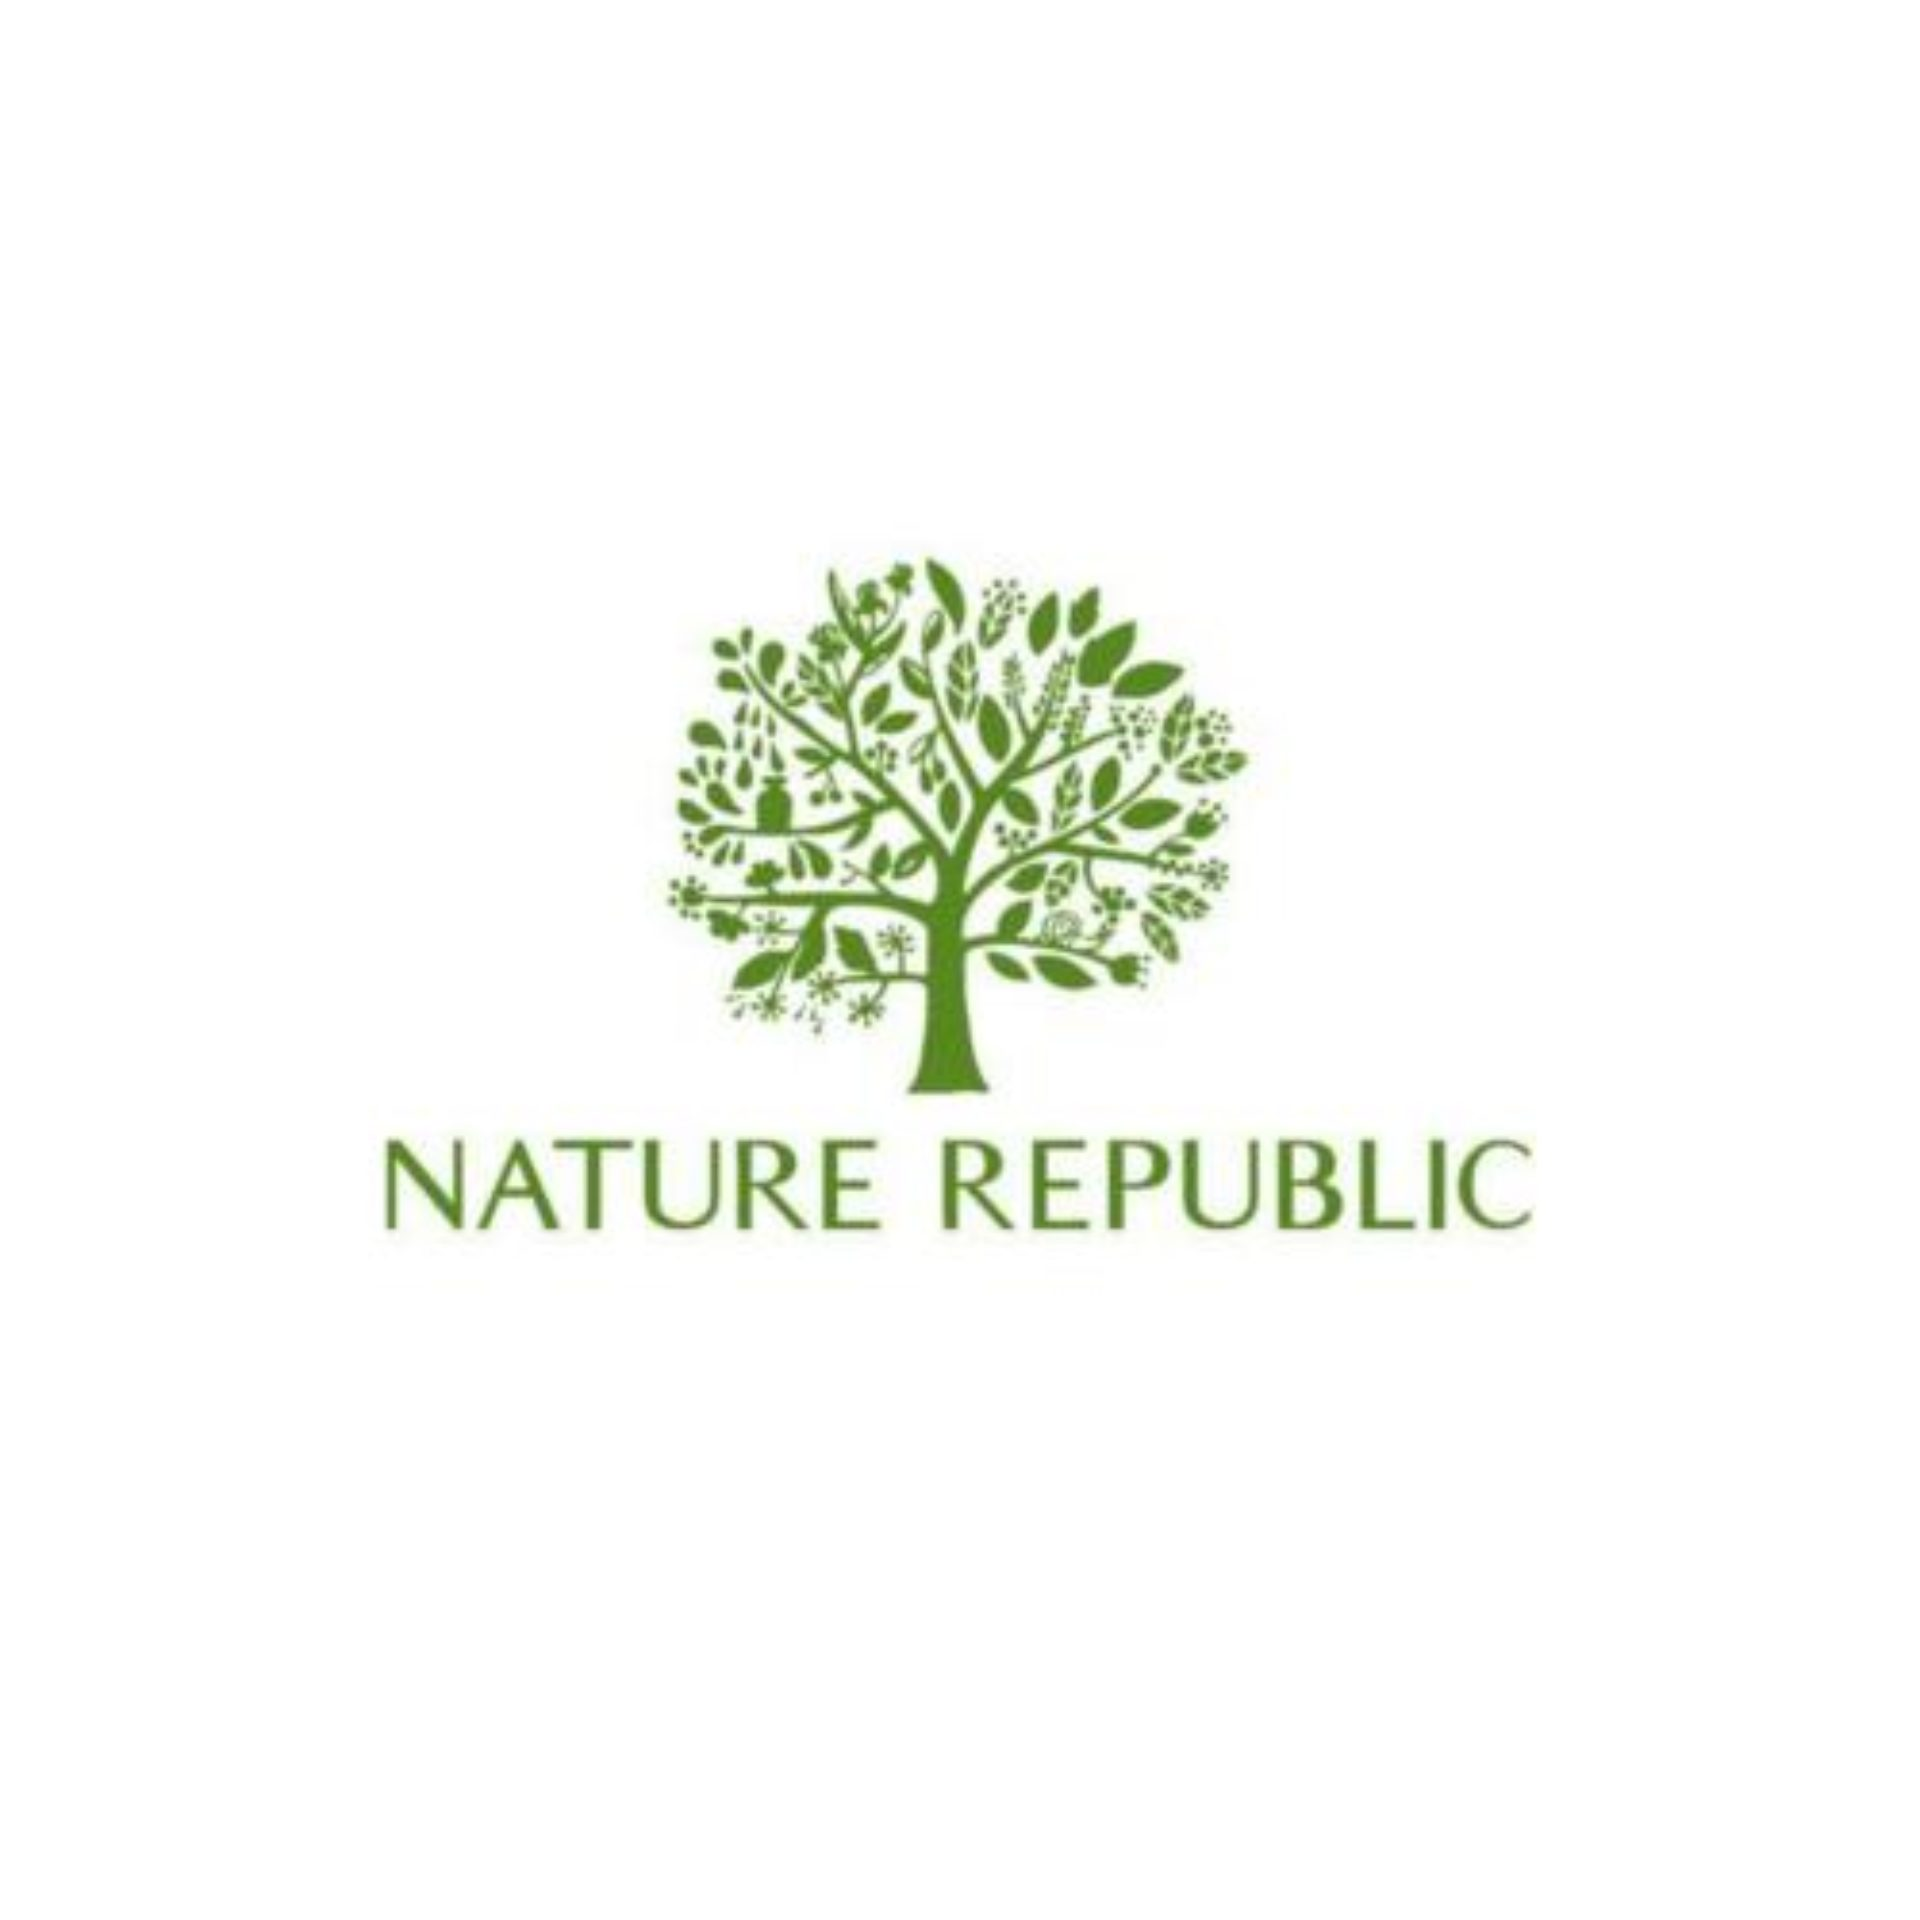 nature_republic